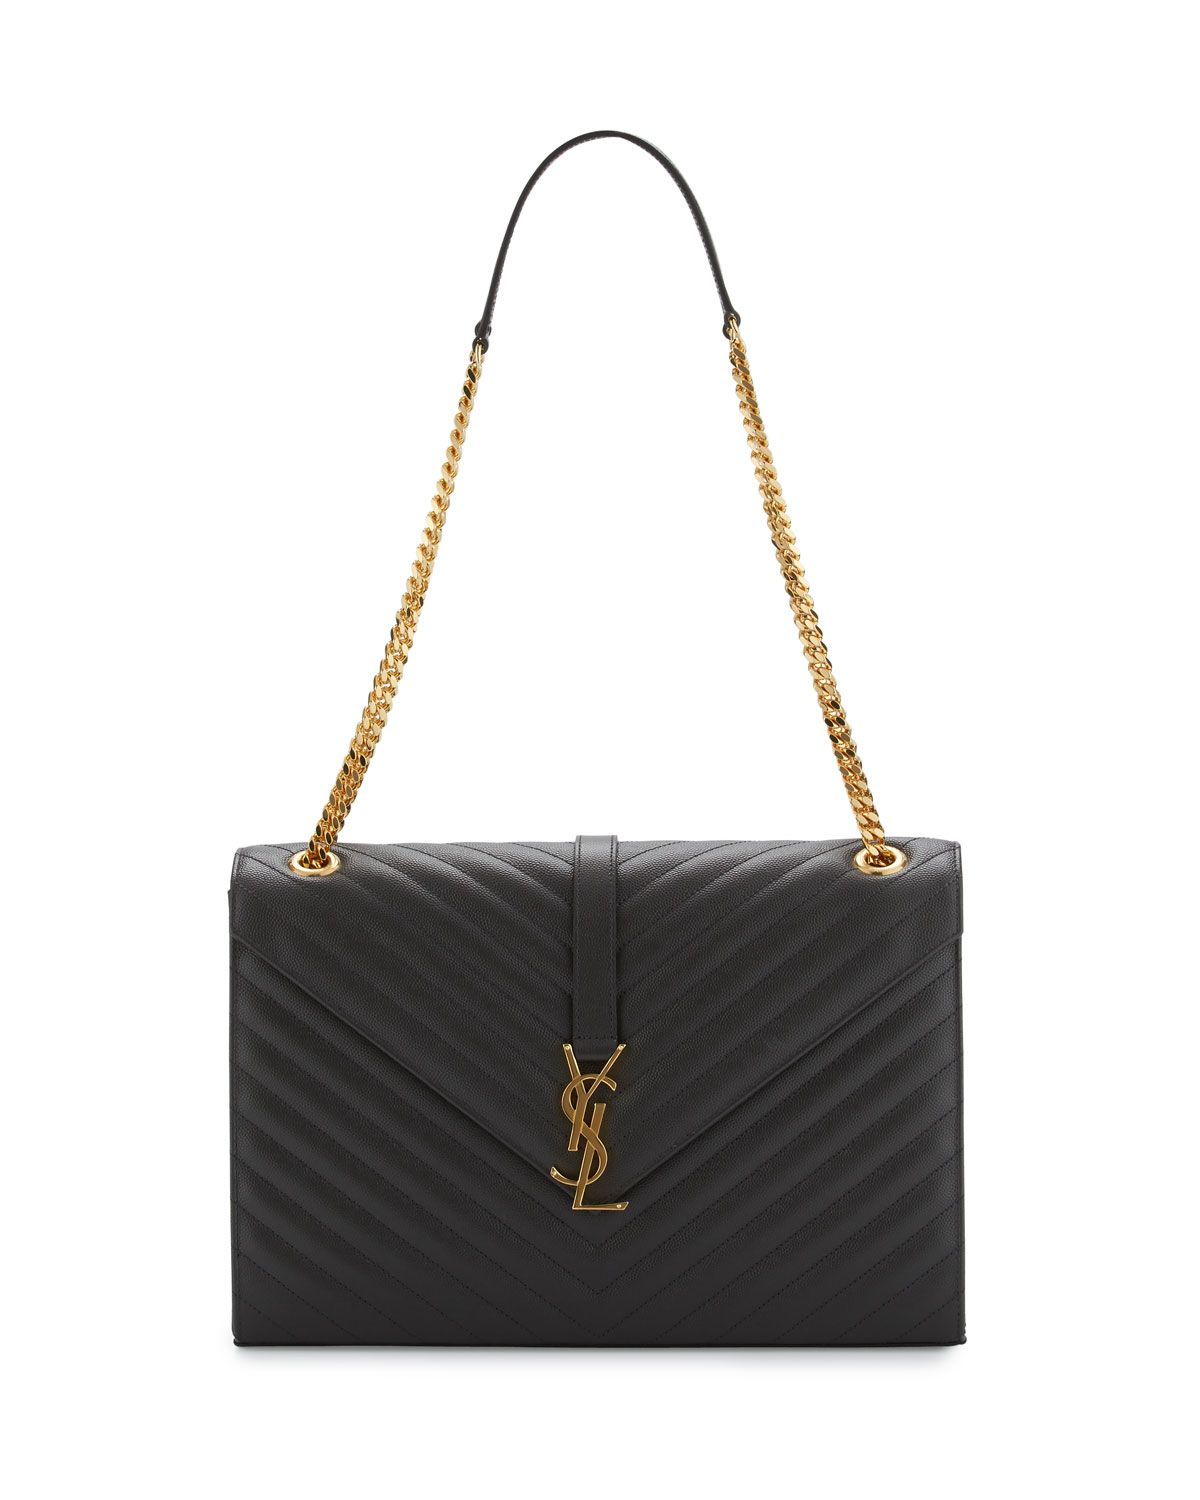 926891f163d Saint Laurent Monogram Matelasse Shoulder Bag in 2019 | Bags | Ysl ...